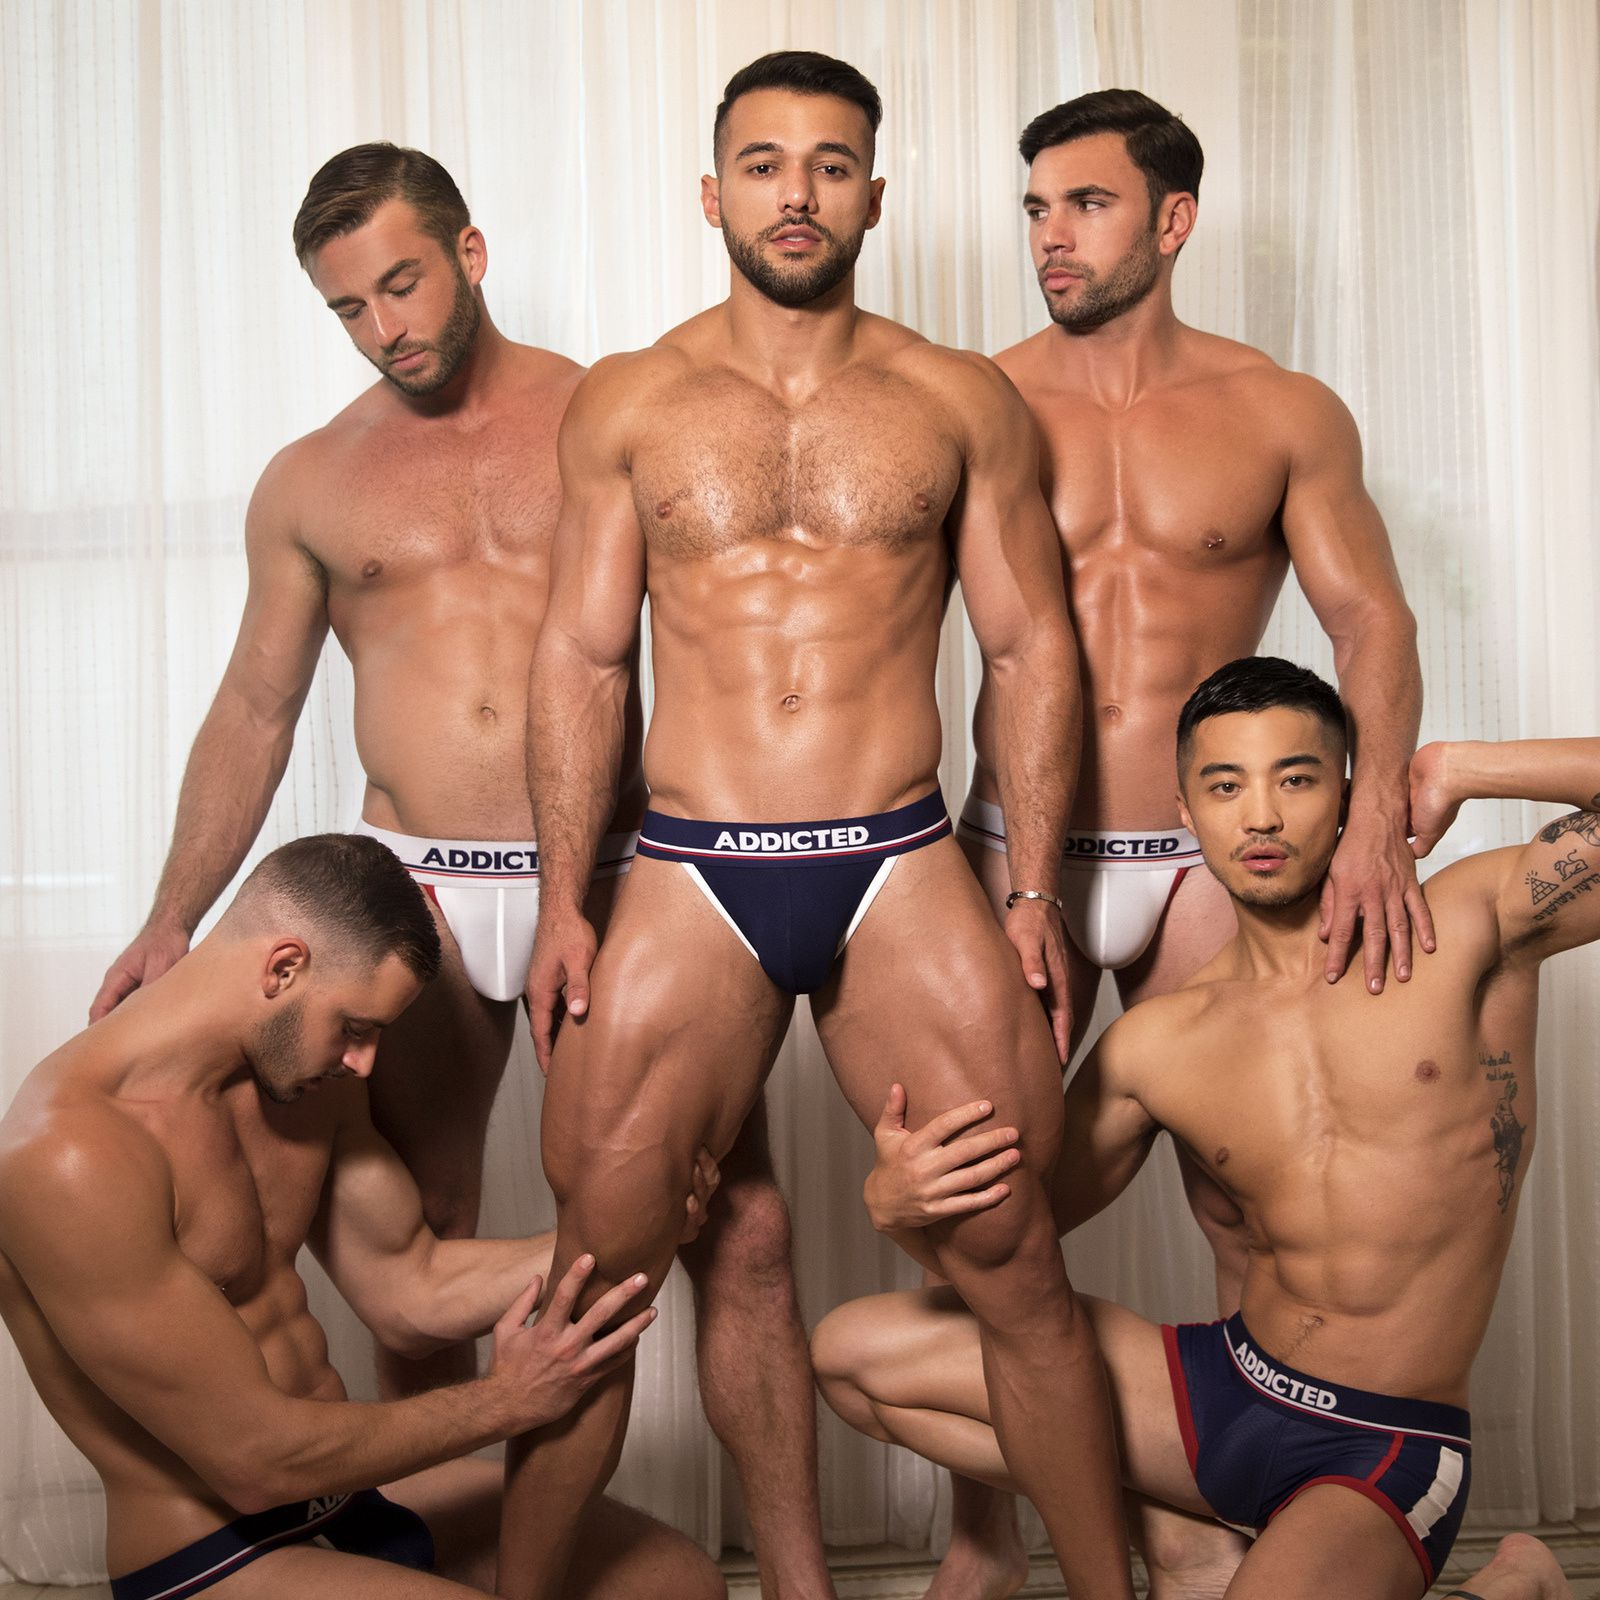 Addicted collection underwear Automne/Hiver 2018-19. 1